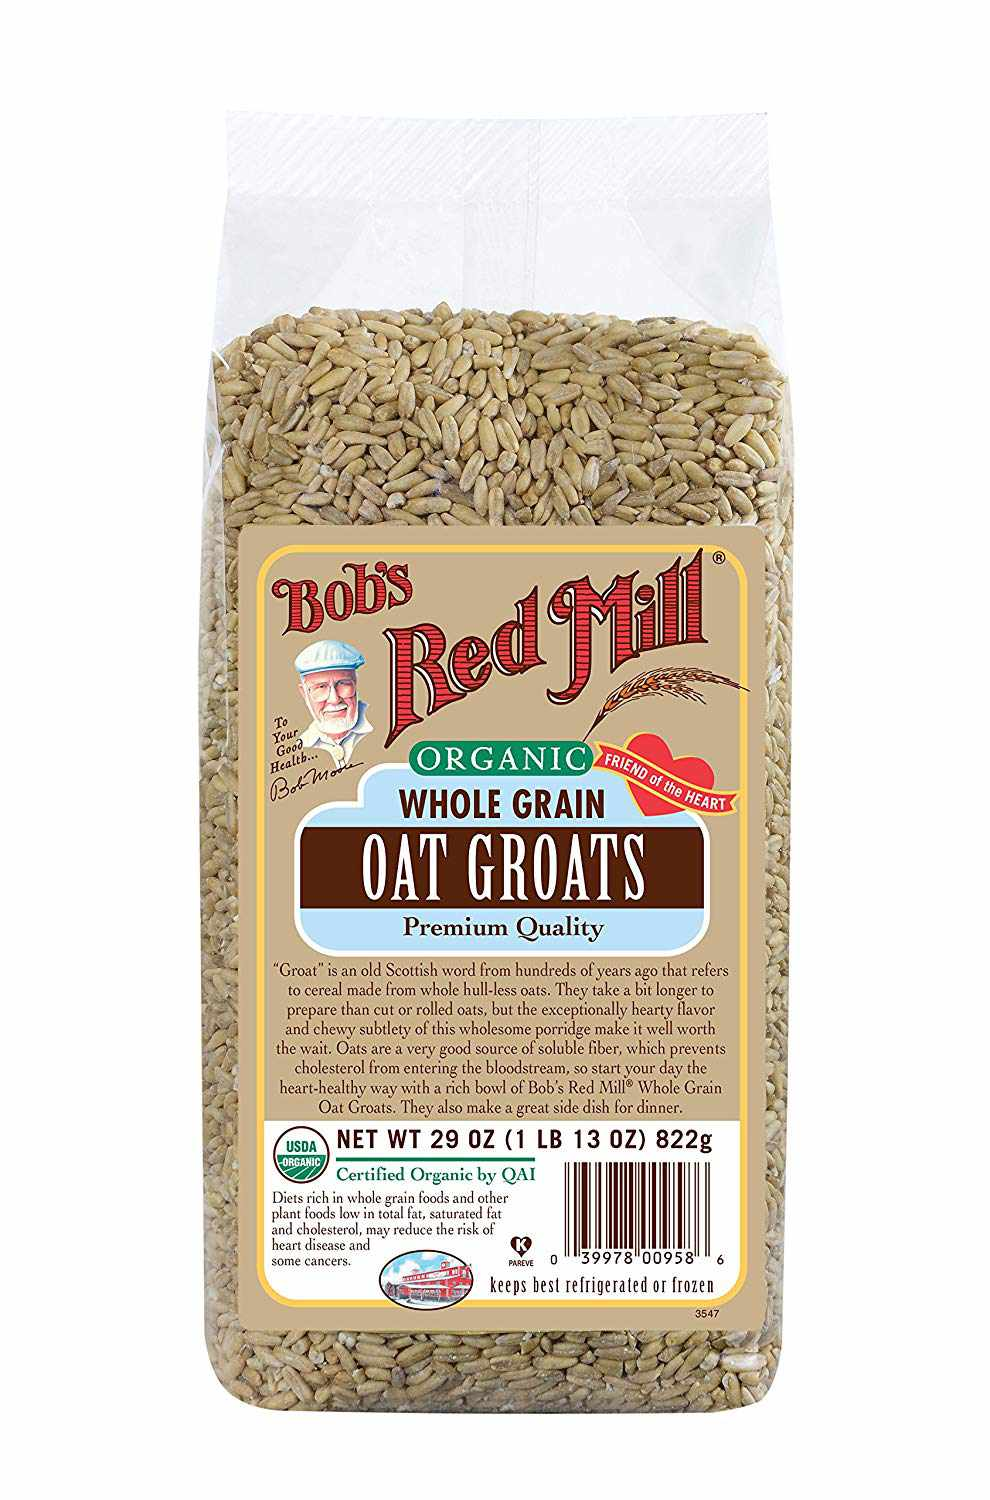 Organic Whole Grain Oat Groats